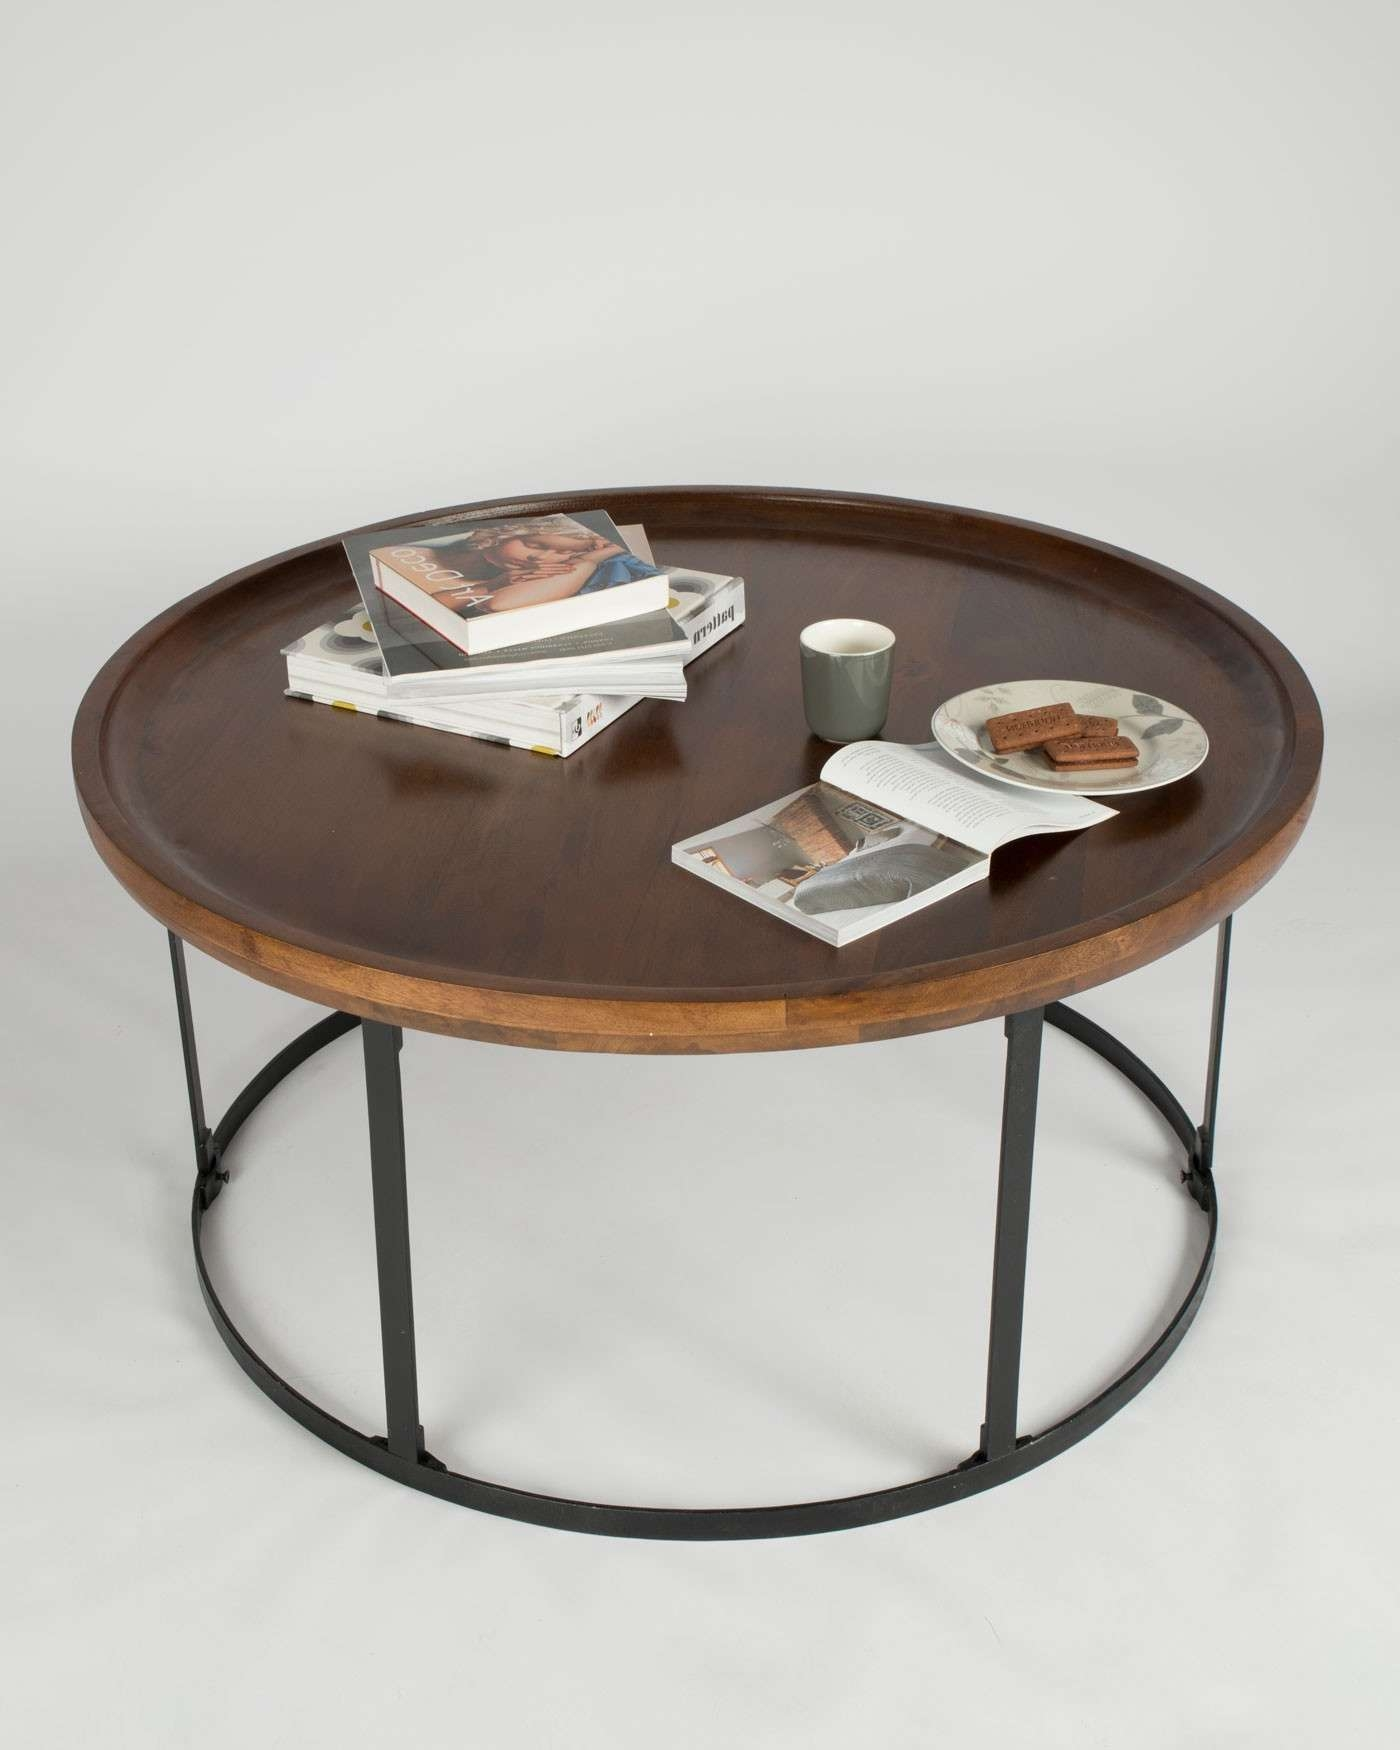 Coffee Table : Amazing Small Round Glass Coffee Table Retro Coffee For Trendy Square Dark Wood Coffee Table (View 4 of 20)